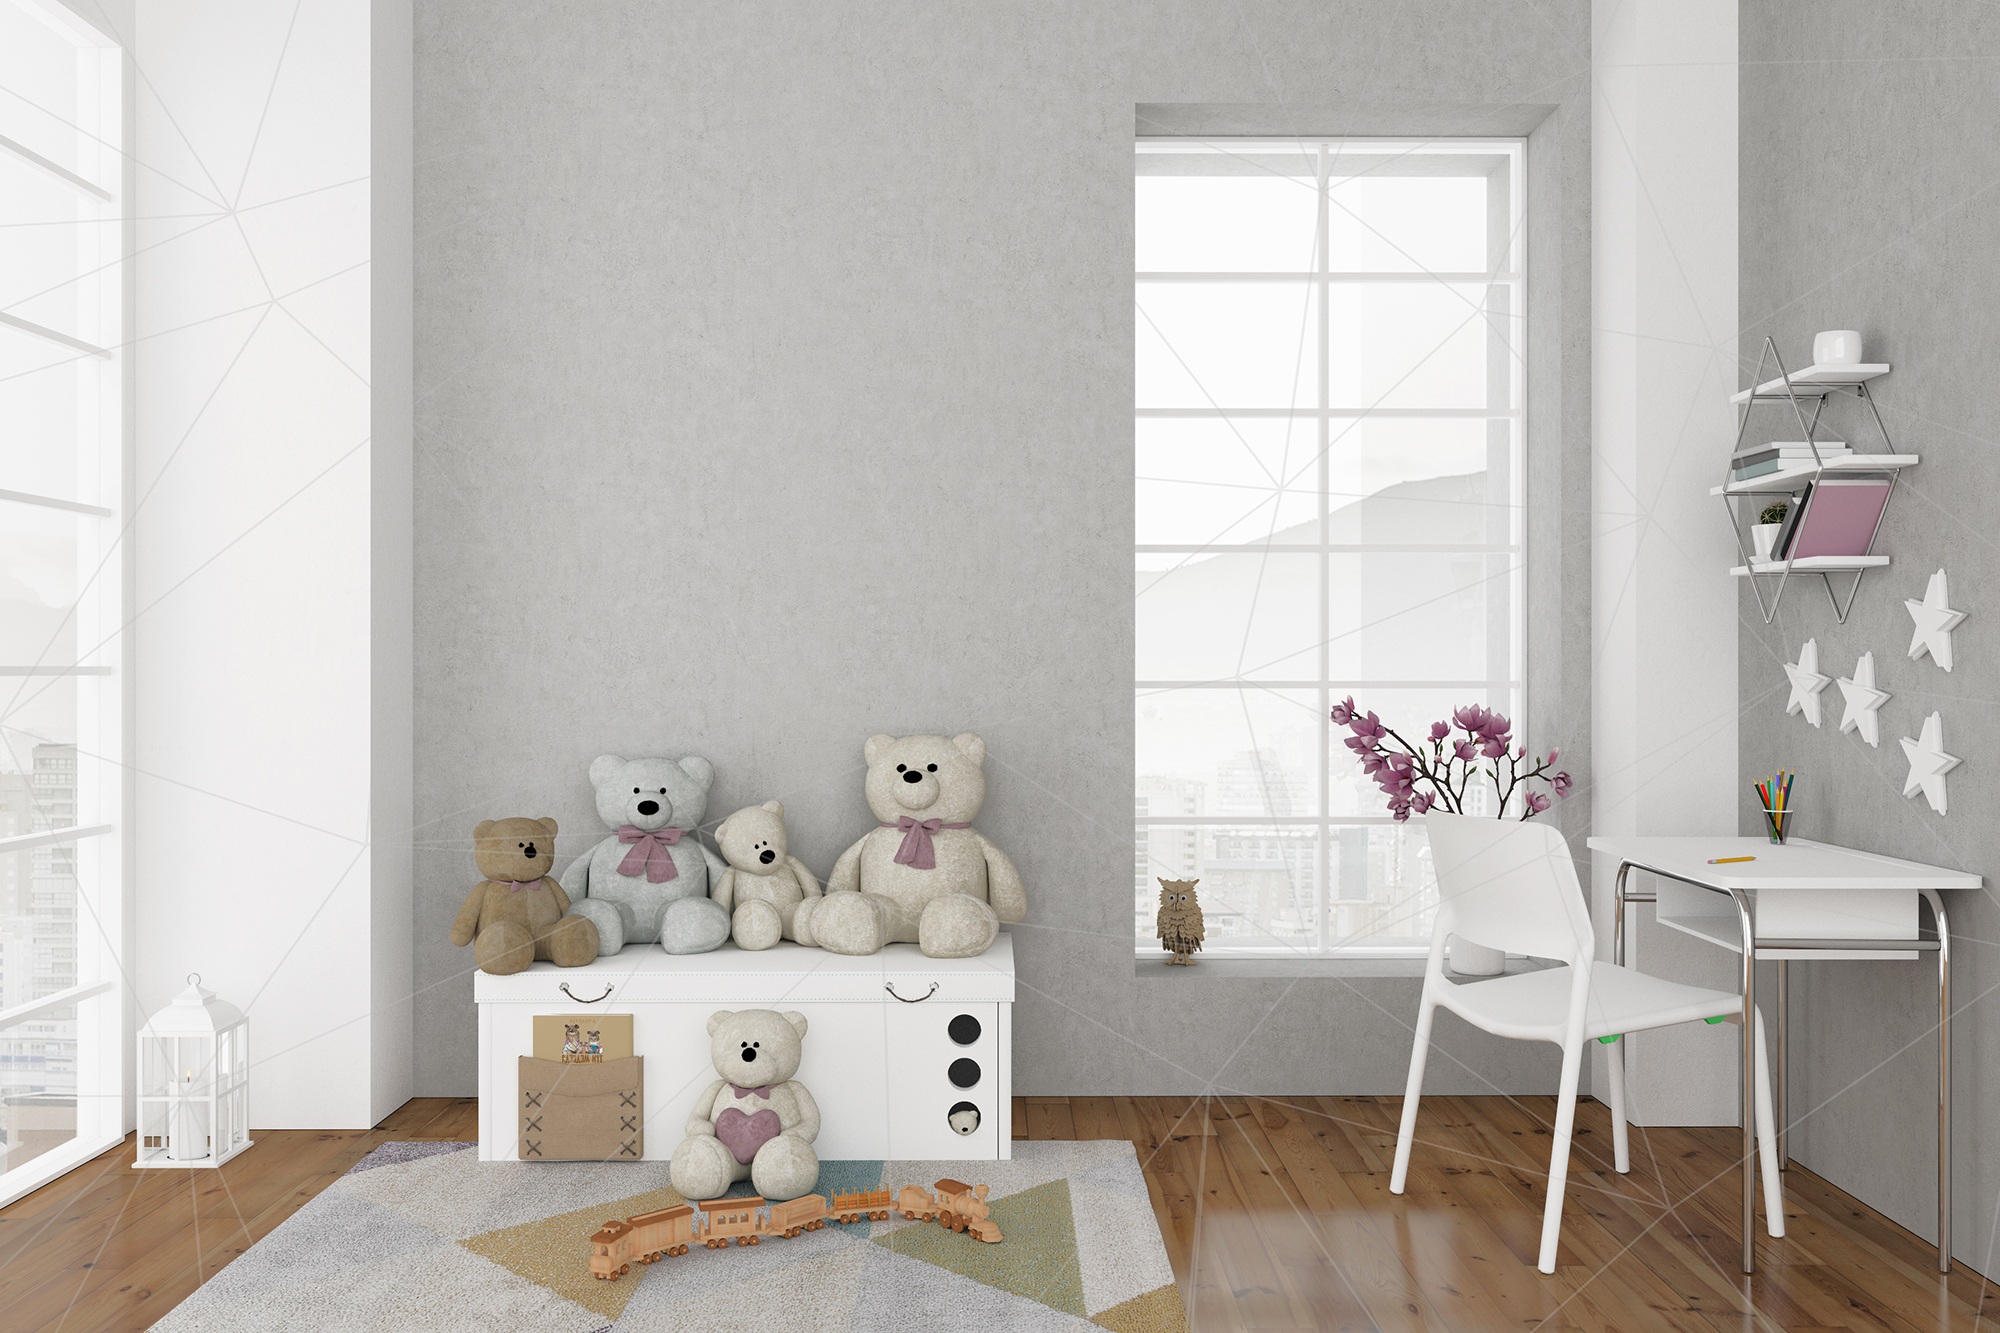 Nursery interior bundle - 10 images 60 off example image 9